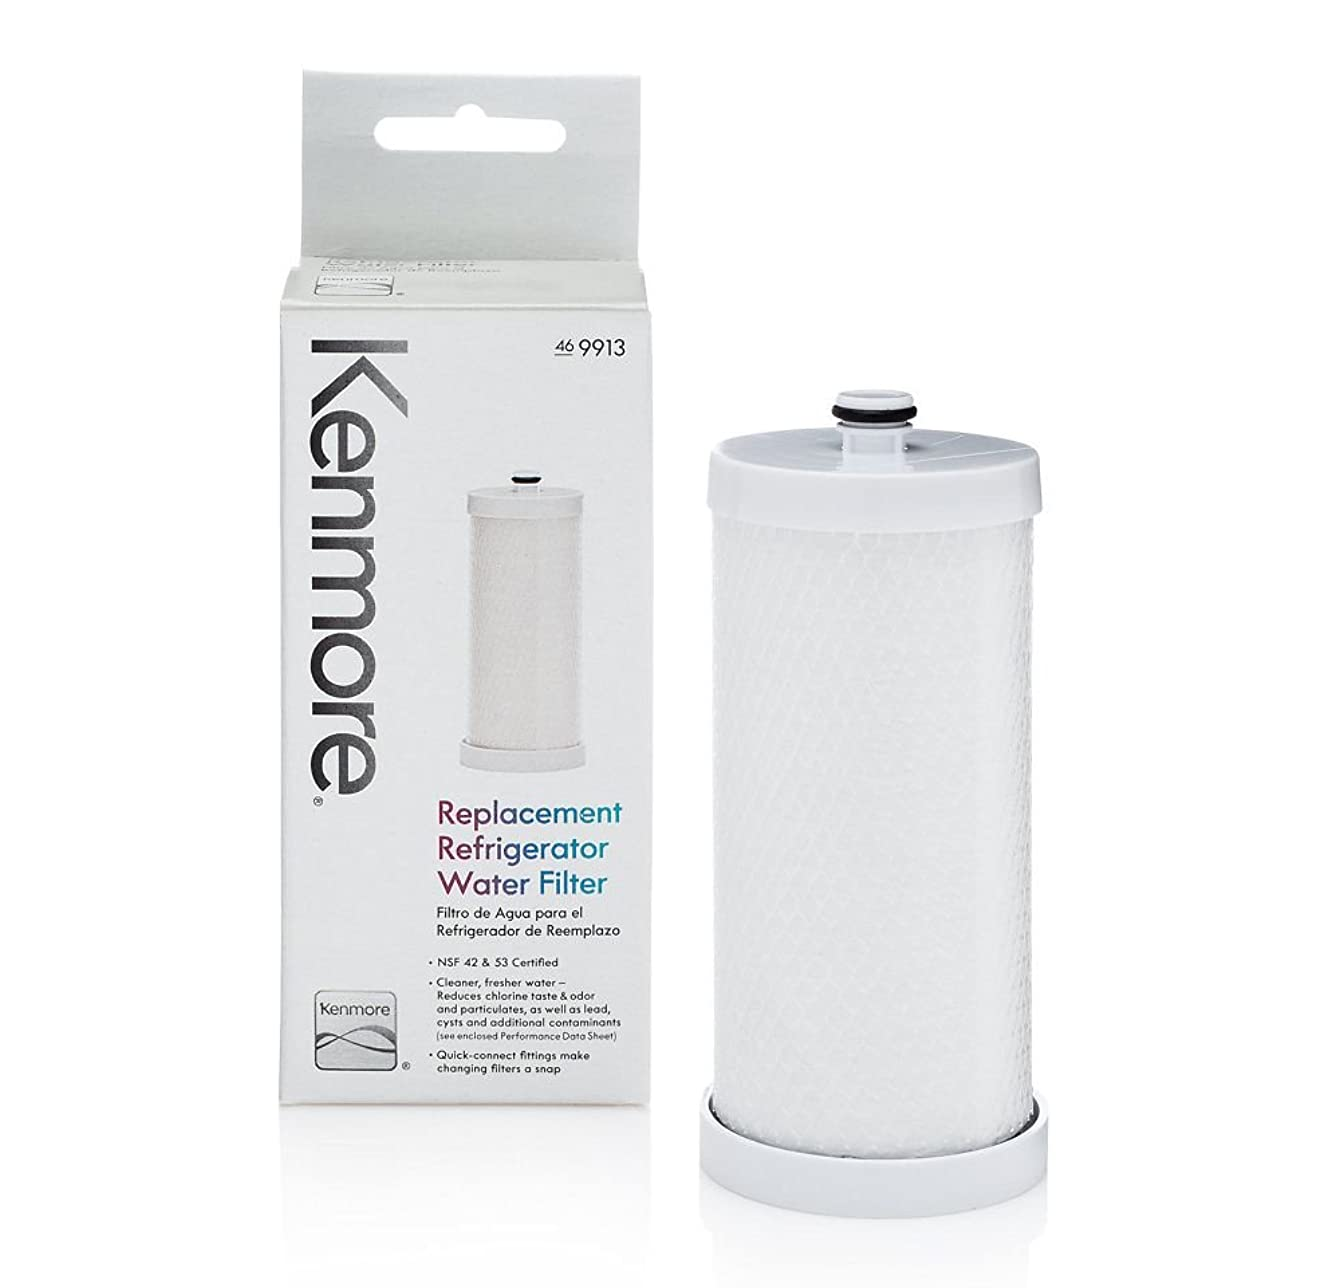 Kenmore 9913 Genuine Kenmore Refrigerator Water Filter for FRIGIDAIRE,CROSLEY,WHITE-WESTINGHOUSE,GIBSON,KENMORE Genuine Original Equipment Manufacturer (OEM) part